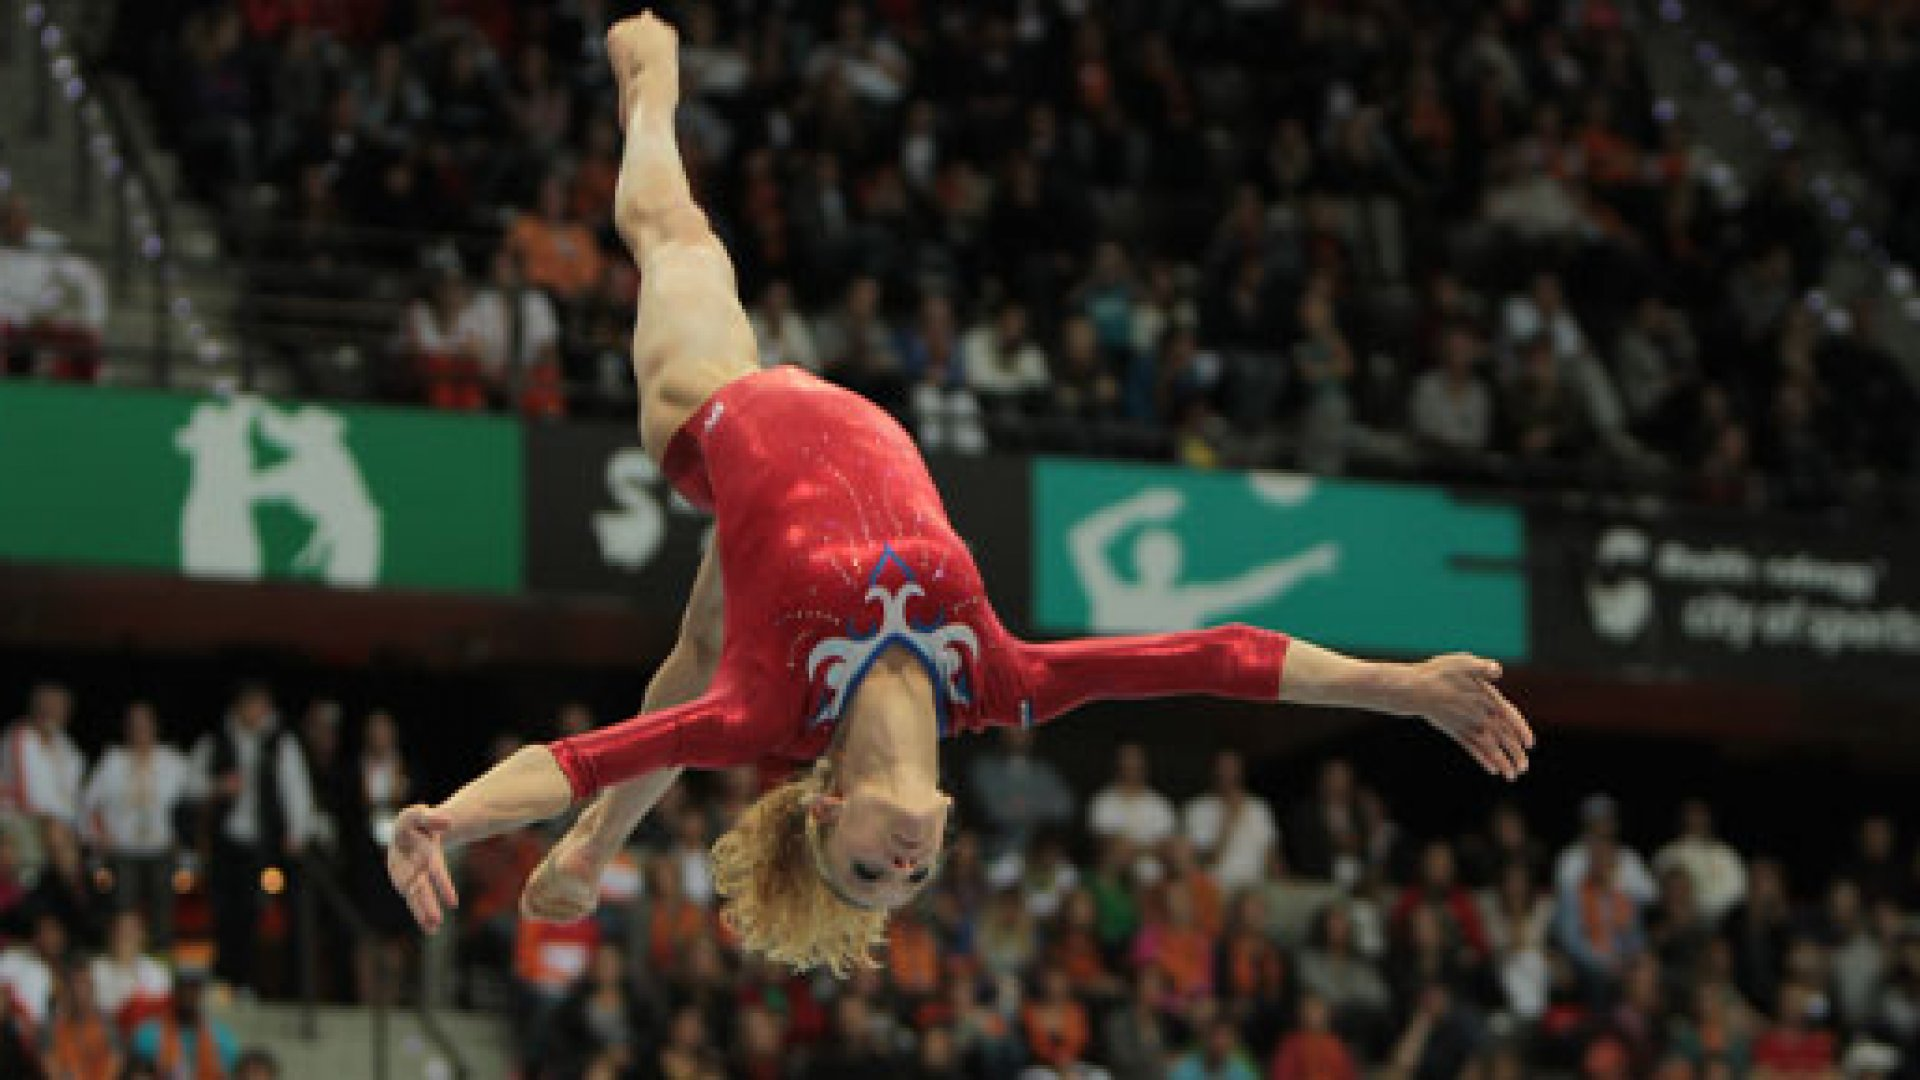 Based in Reading, Pennsylvania, GK Elite designs and manufactures gymnastics leotards for a dozen of countries.